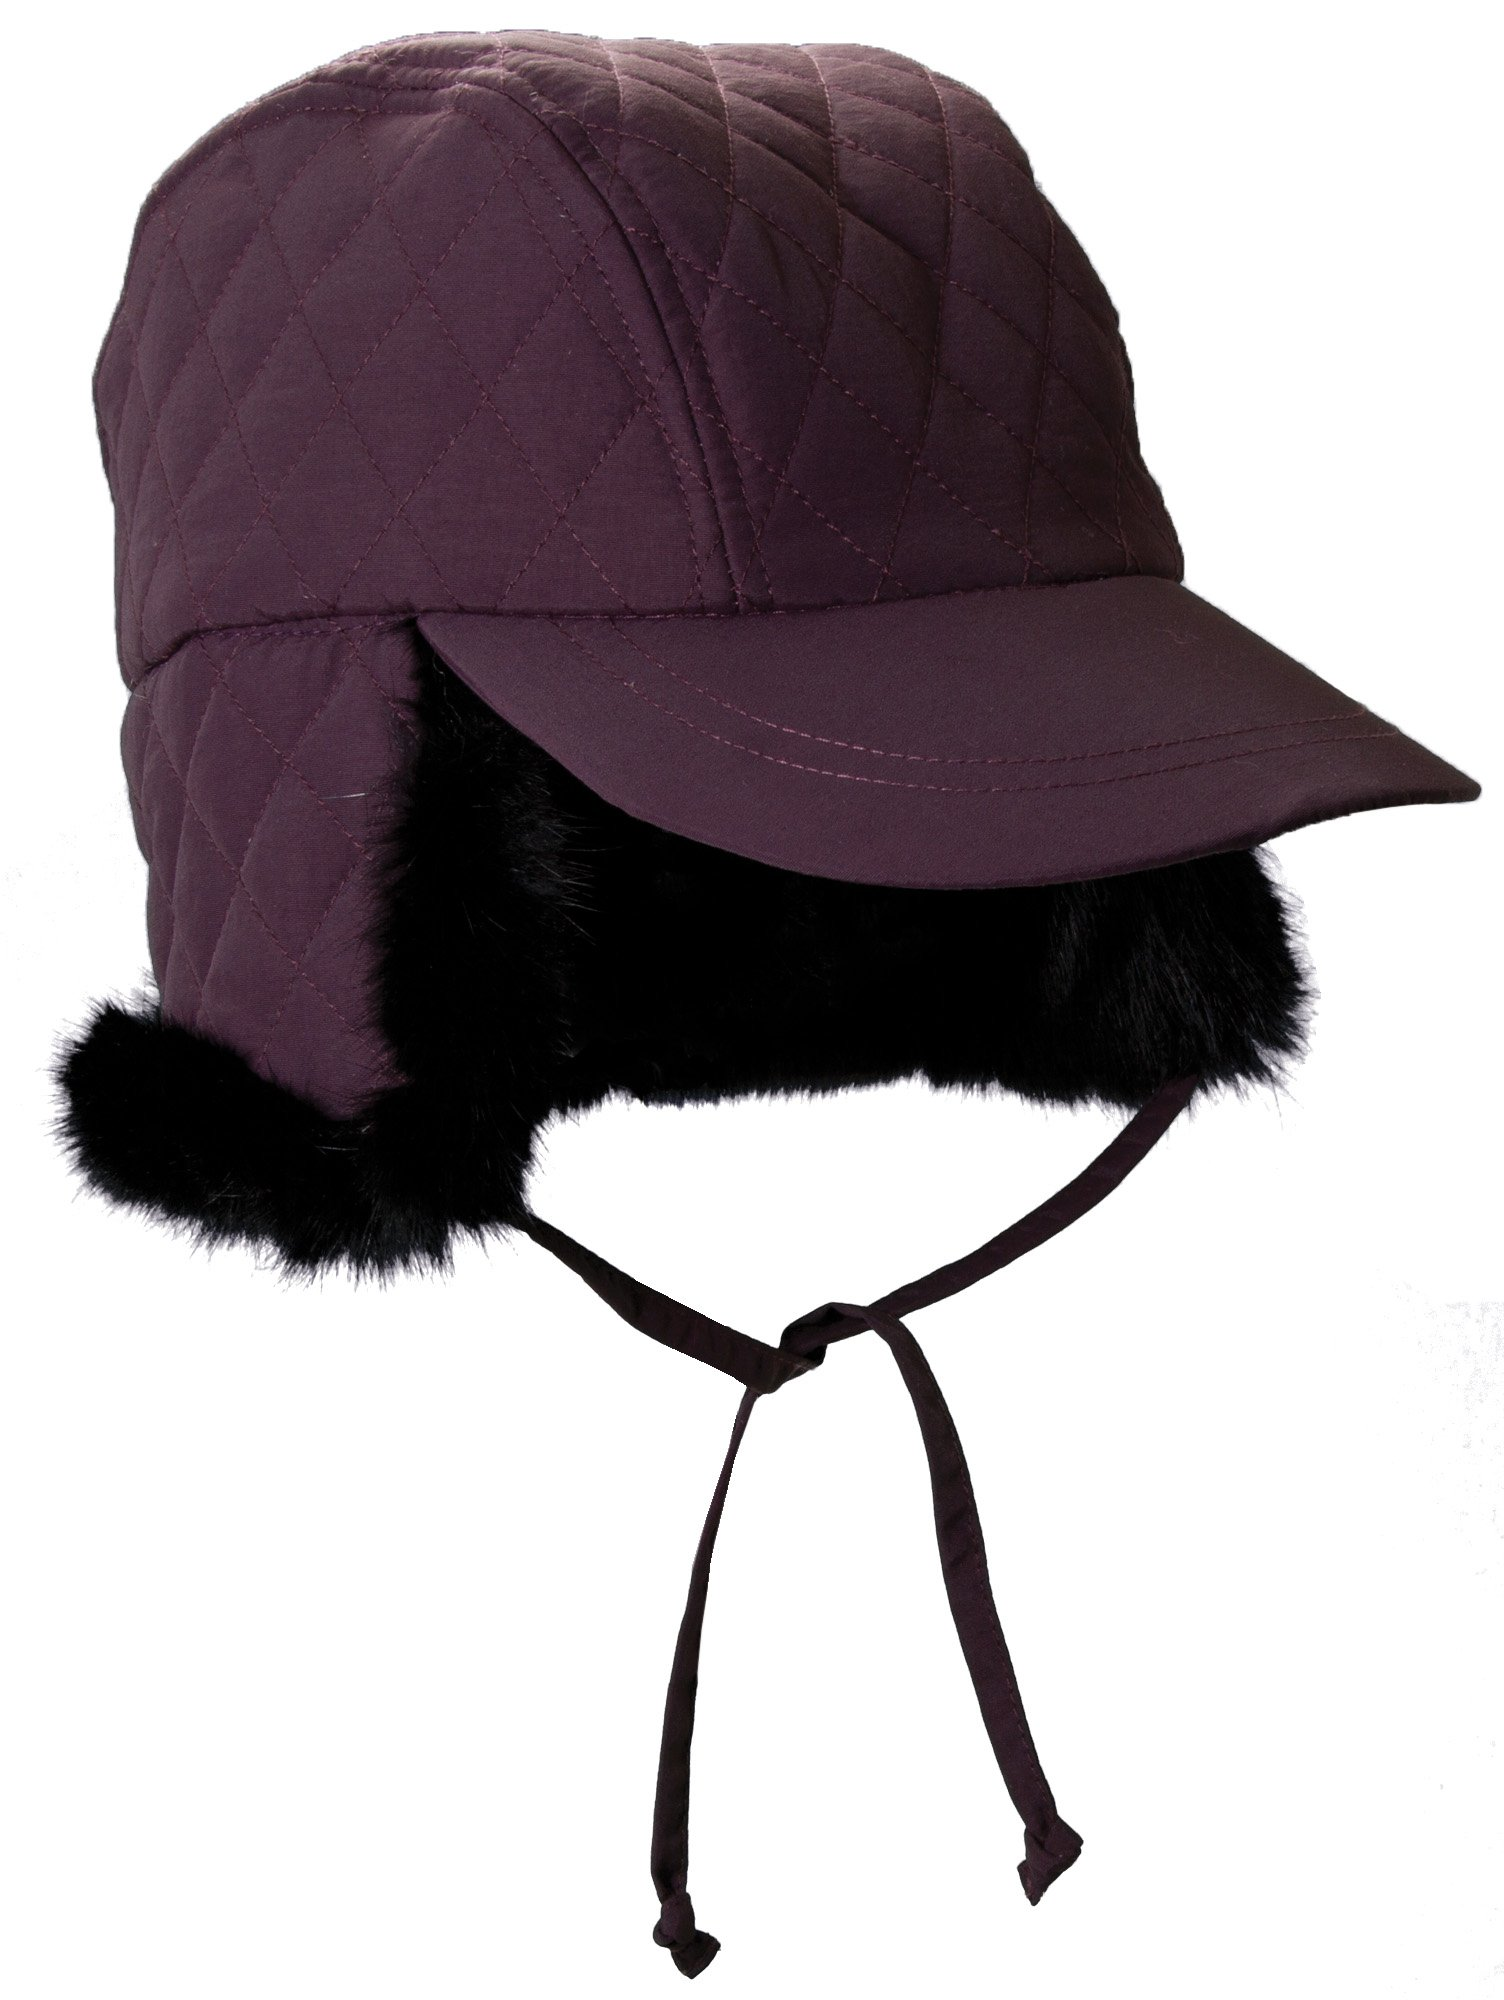 Petite Small Purple Eggplant Quilted Winter Rain Hat, Ear Warmer Cuff - Trapper Hat